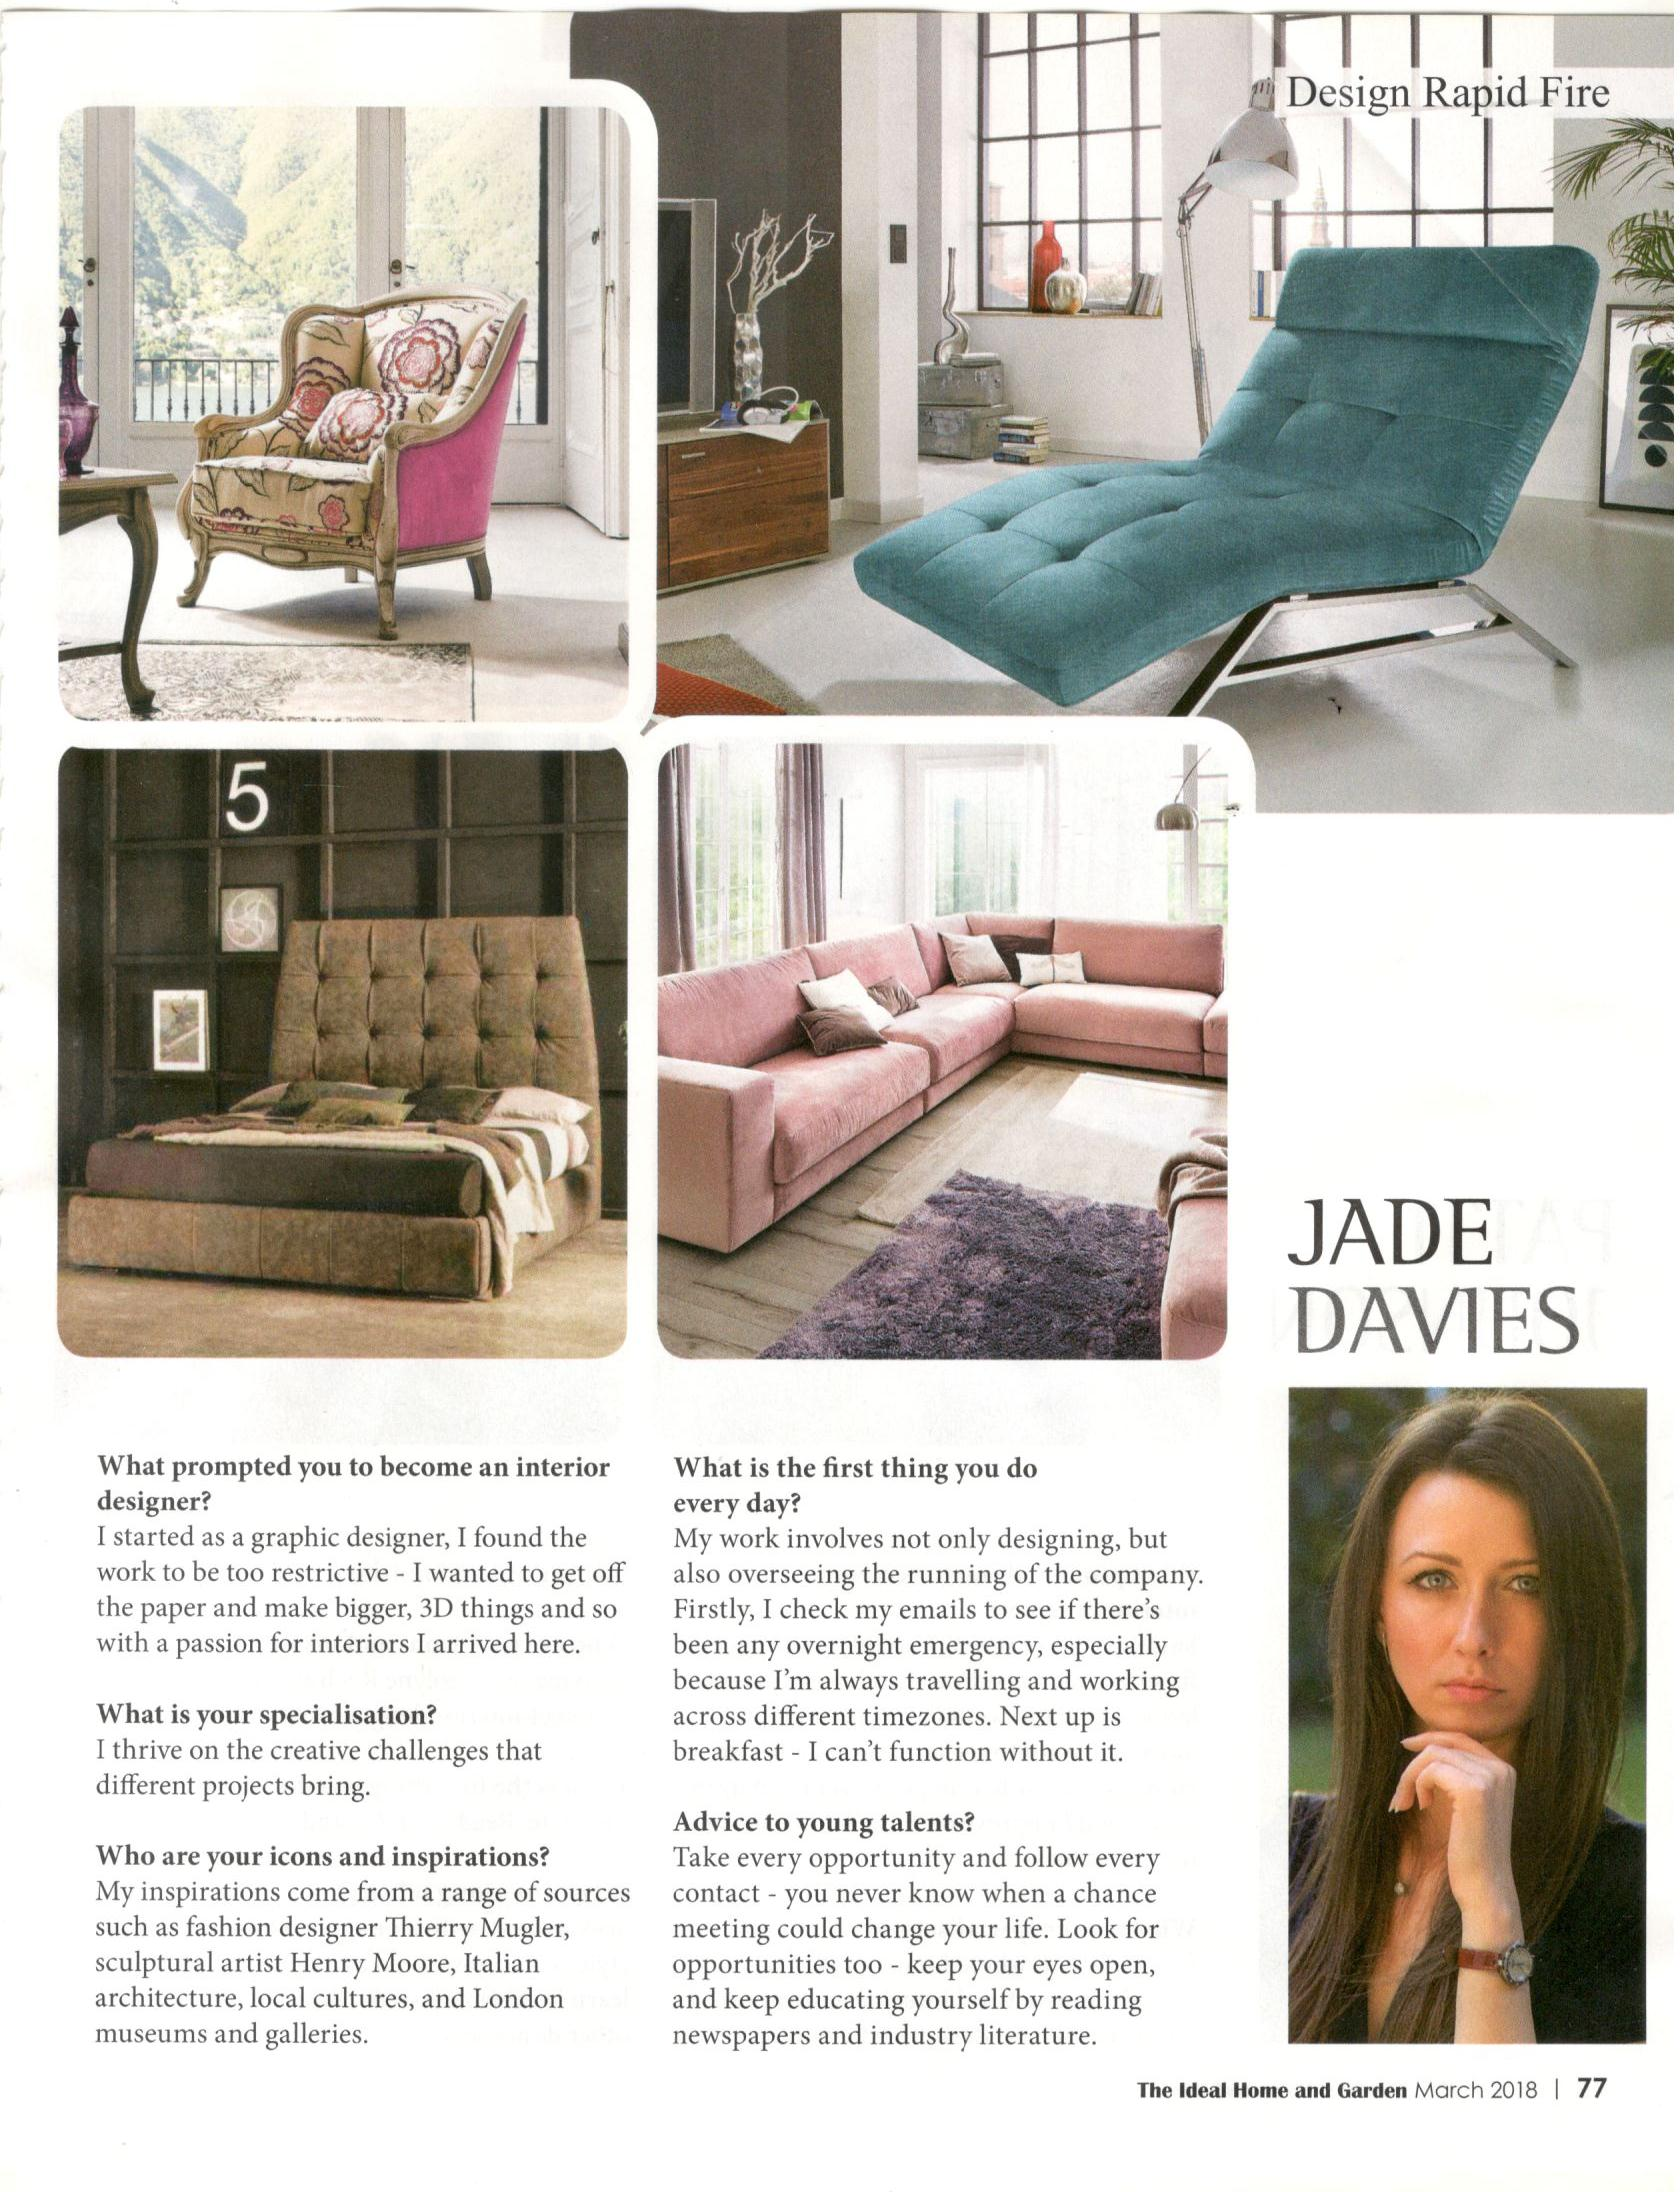 MKM Luxe Suisse - Ideal Home and Garden2 - March 2018.jpg